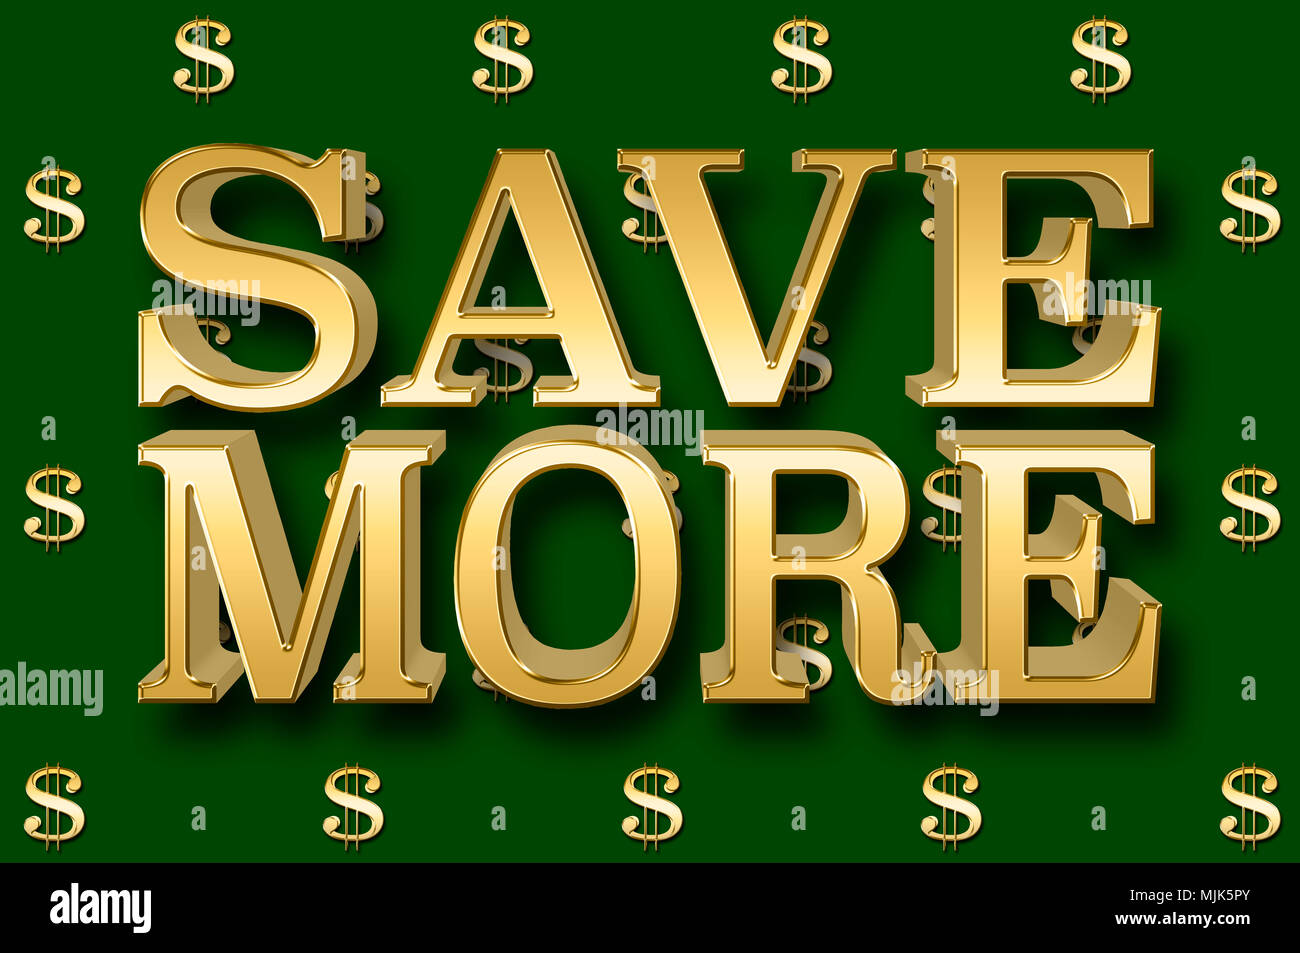 Stock Illustration - Large Metallic Text: Save More, 3D Illustration, Small Golden Dollar Currency Signs In the Money Green Background. - Stock Image